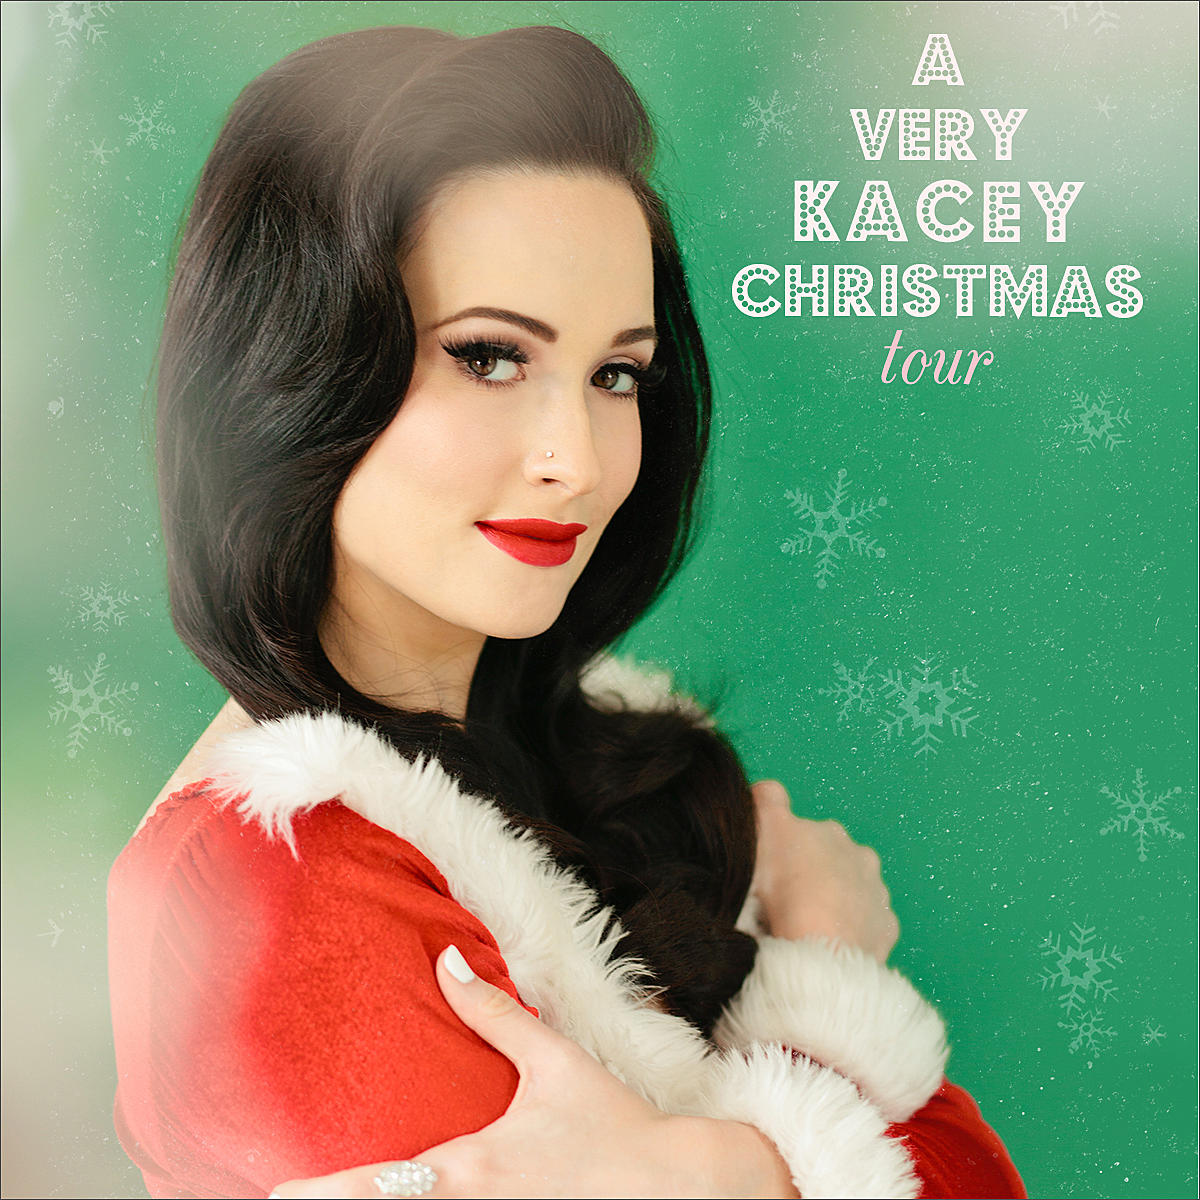 Kacey Musgraves: A Very Kacey Christmas Tour